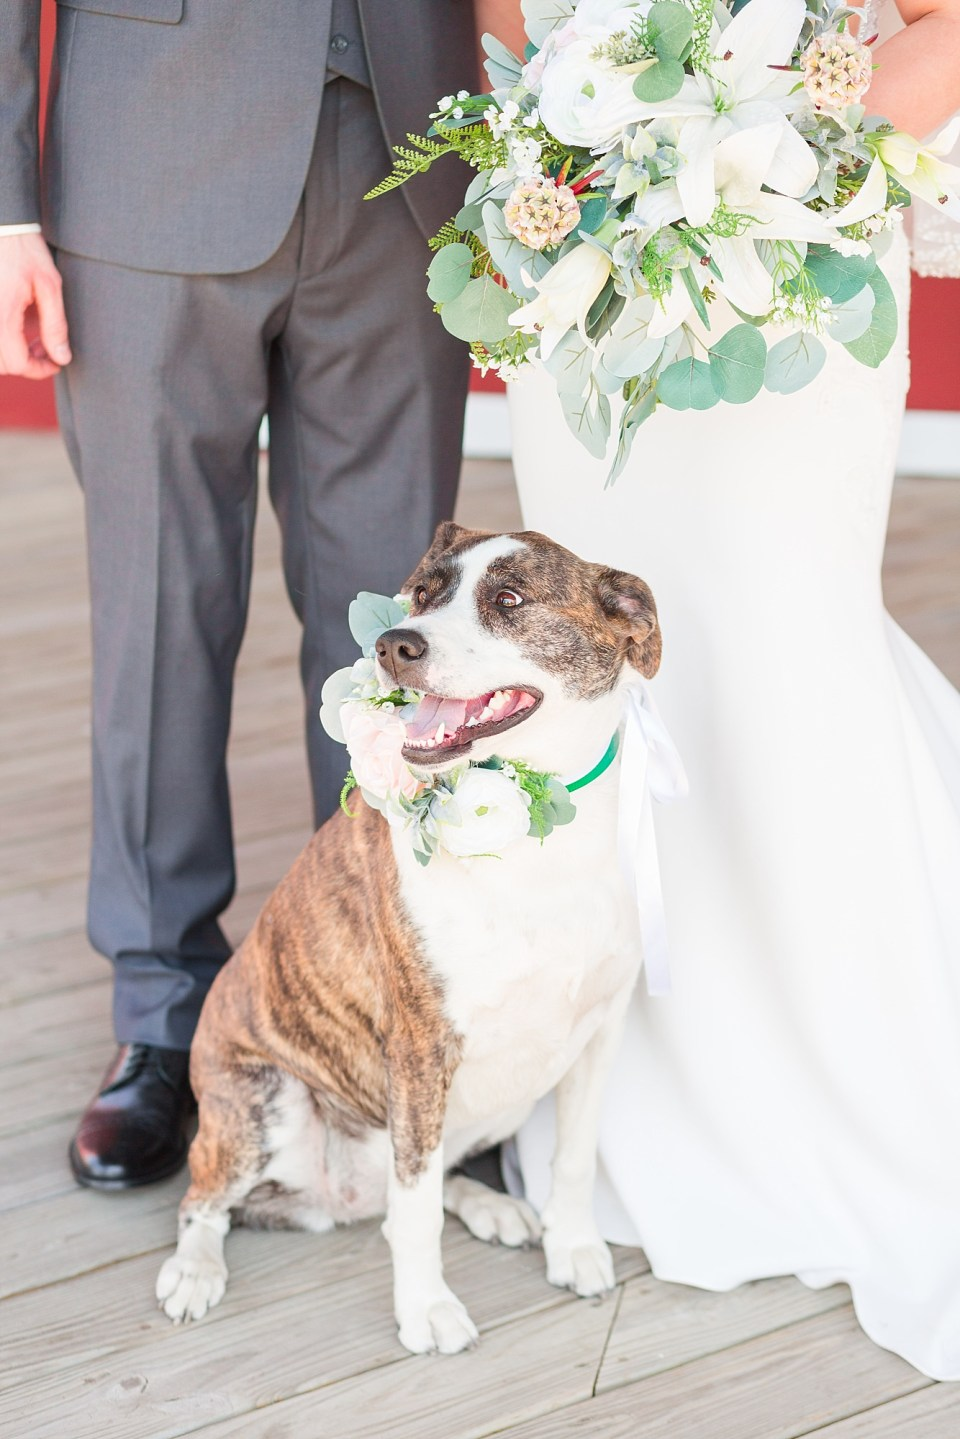 A brown and white dog with a floral collar poses with the bride and groom